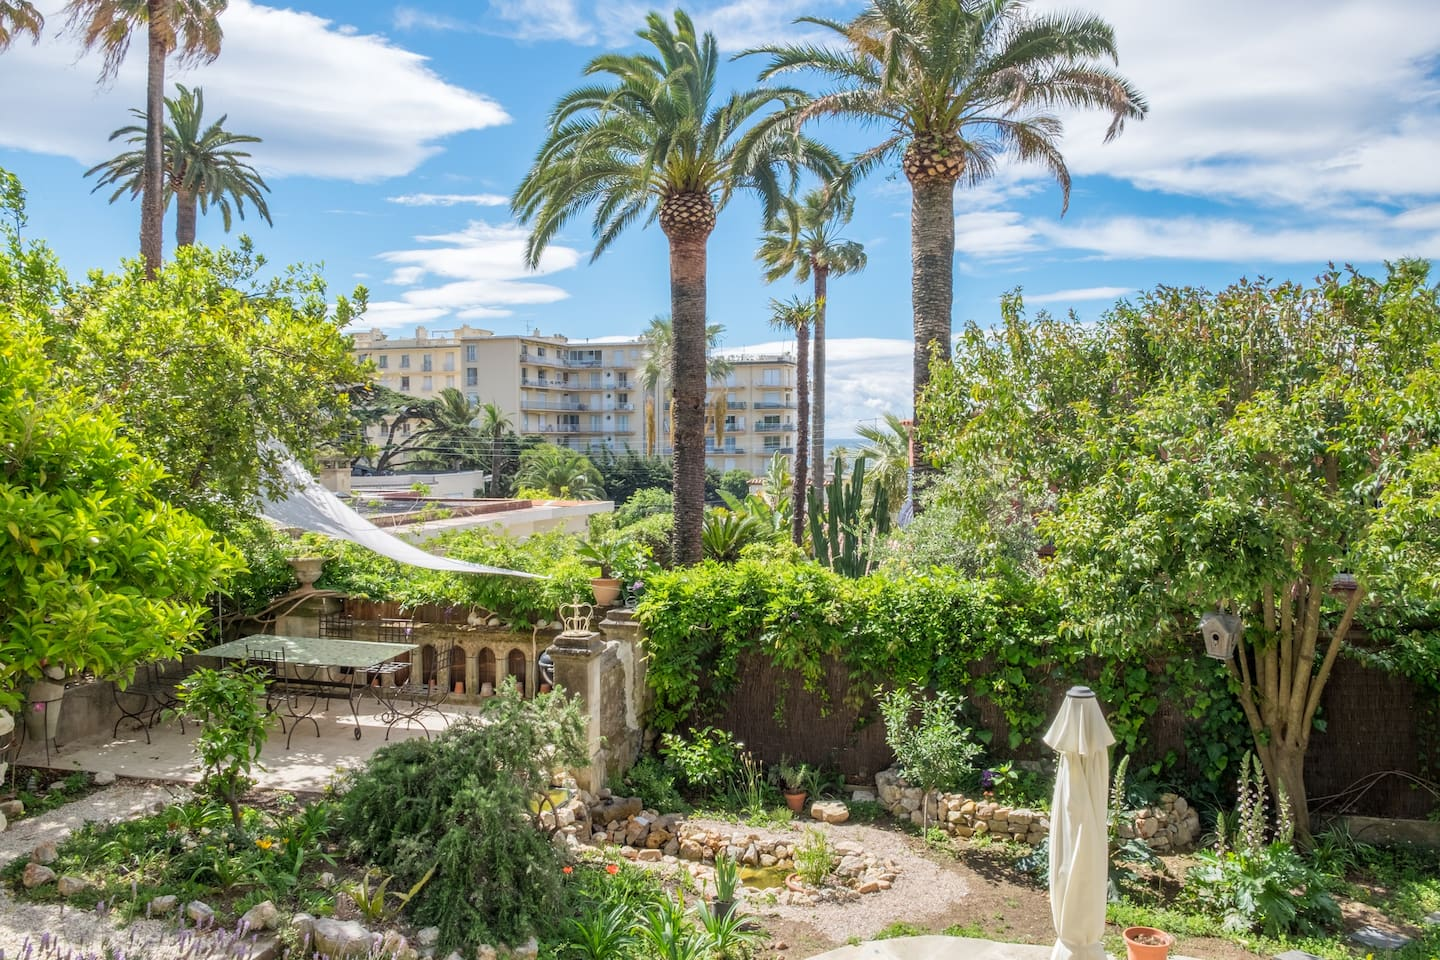 Villa Victoria Garden, Cannes. - Apartments for Rent in Cannes ...